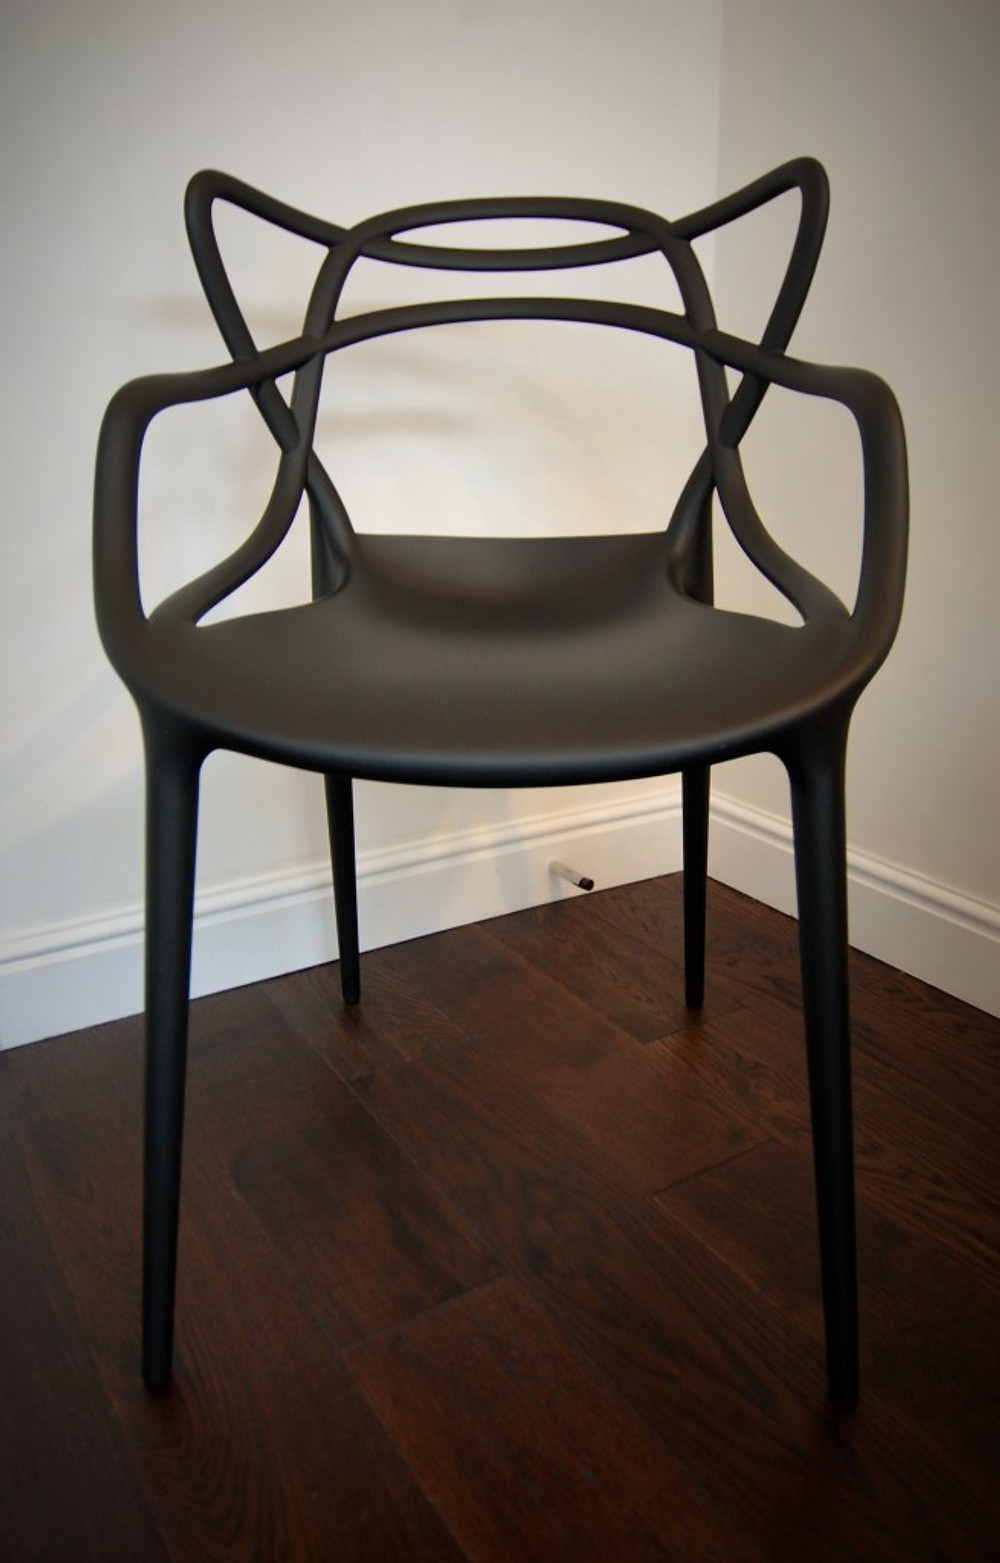 Master Chairs by Philippe Starck